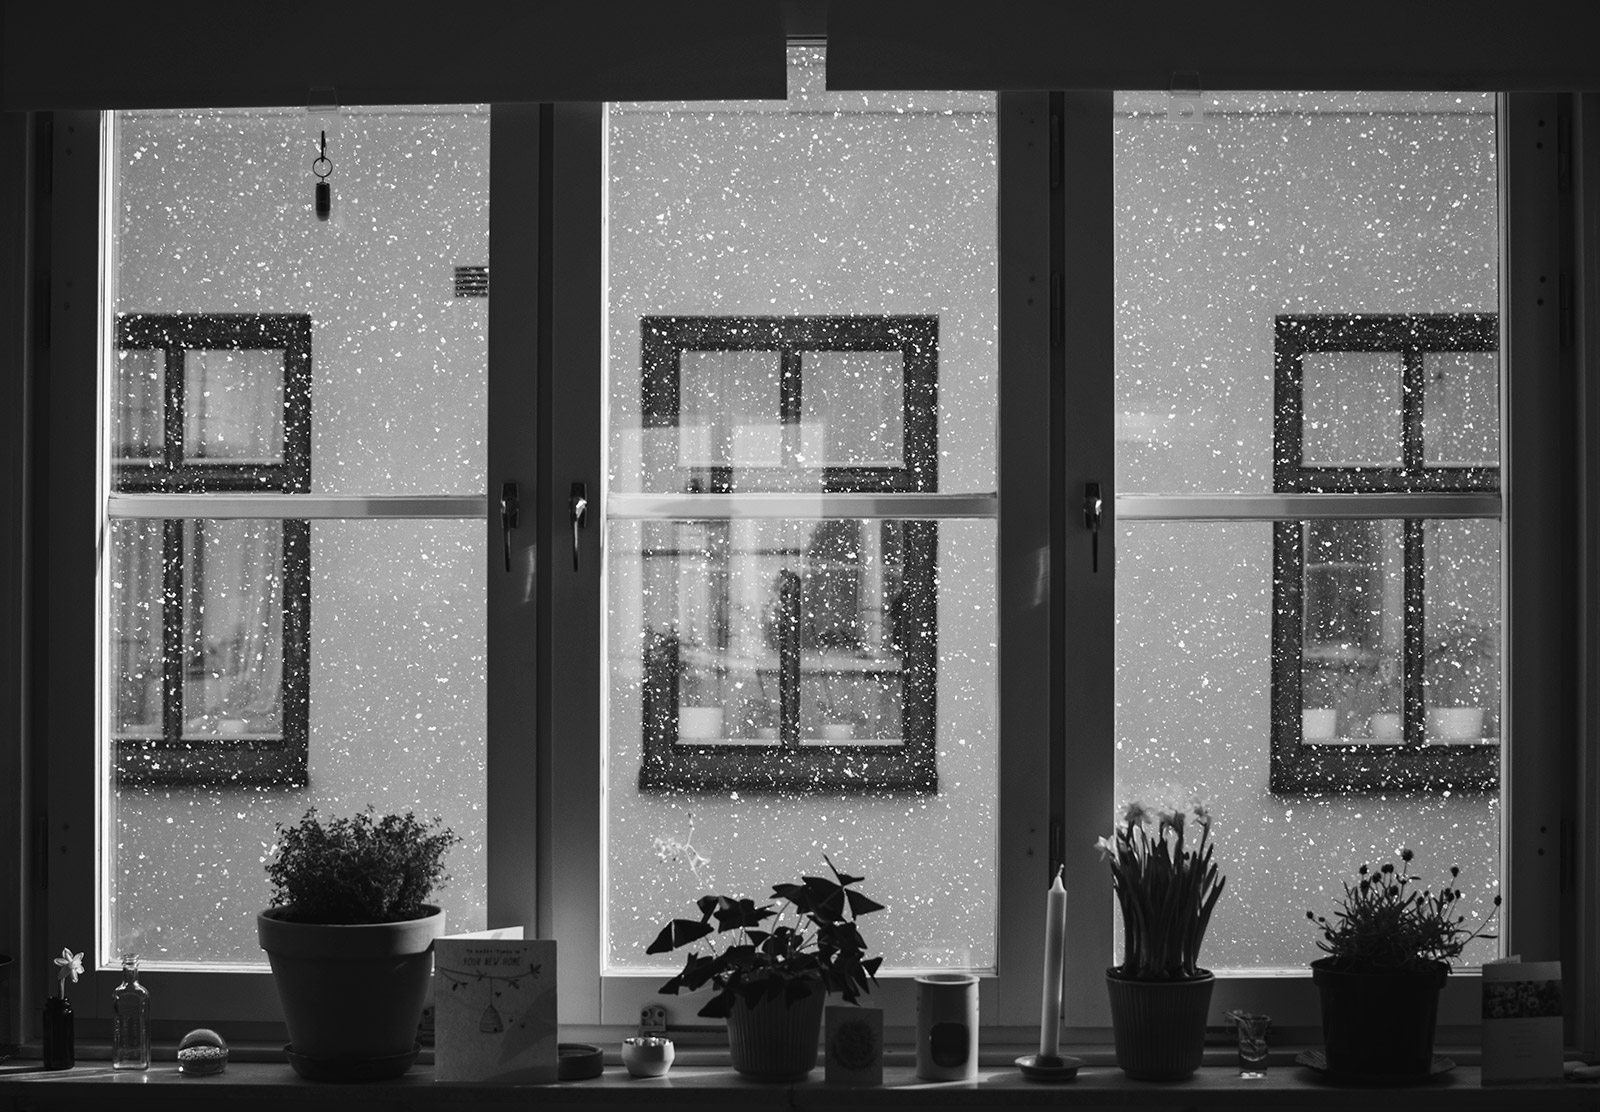 Snow falling outside